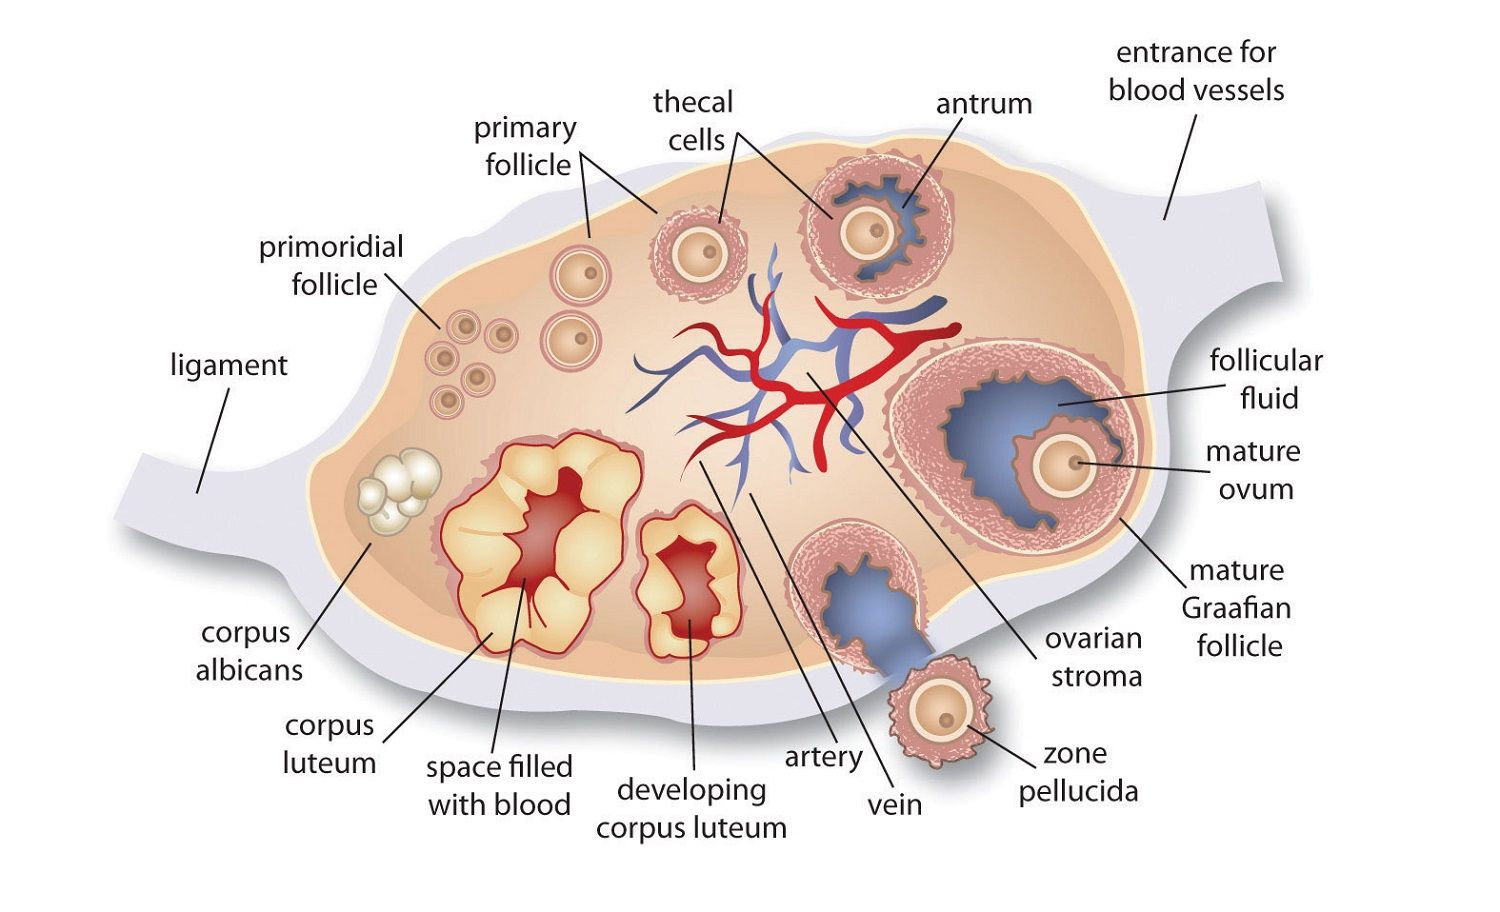 ovary diagram anatomy (With images) | Ovaries, Ovarian follicle ...